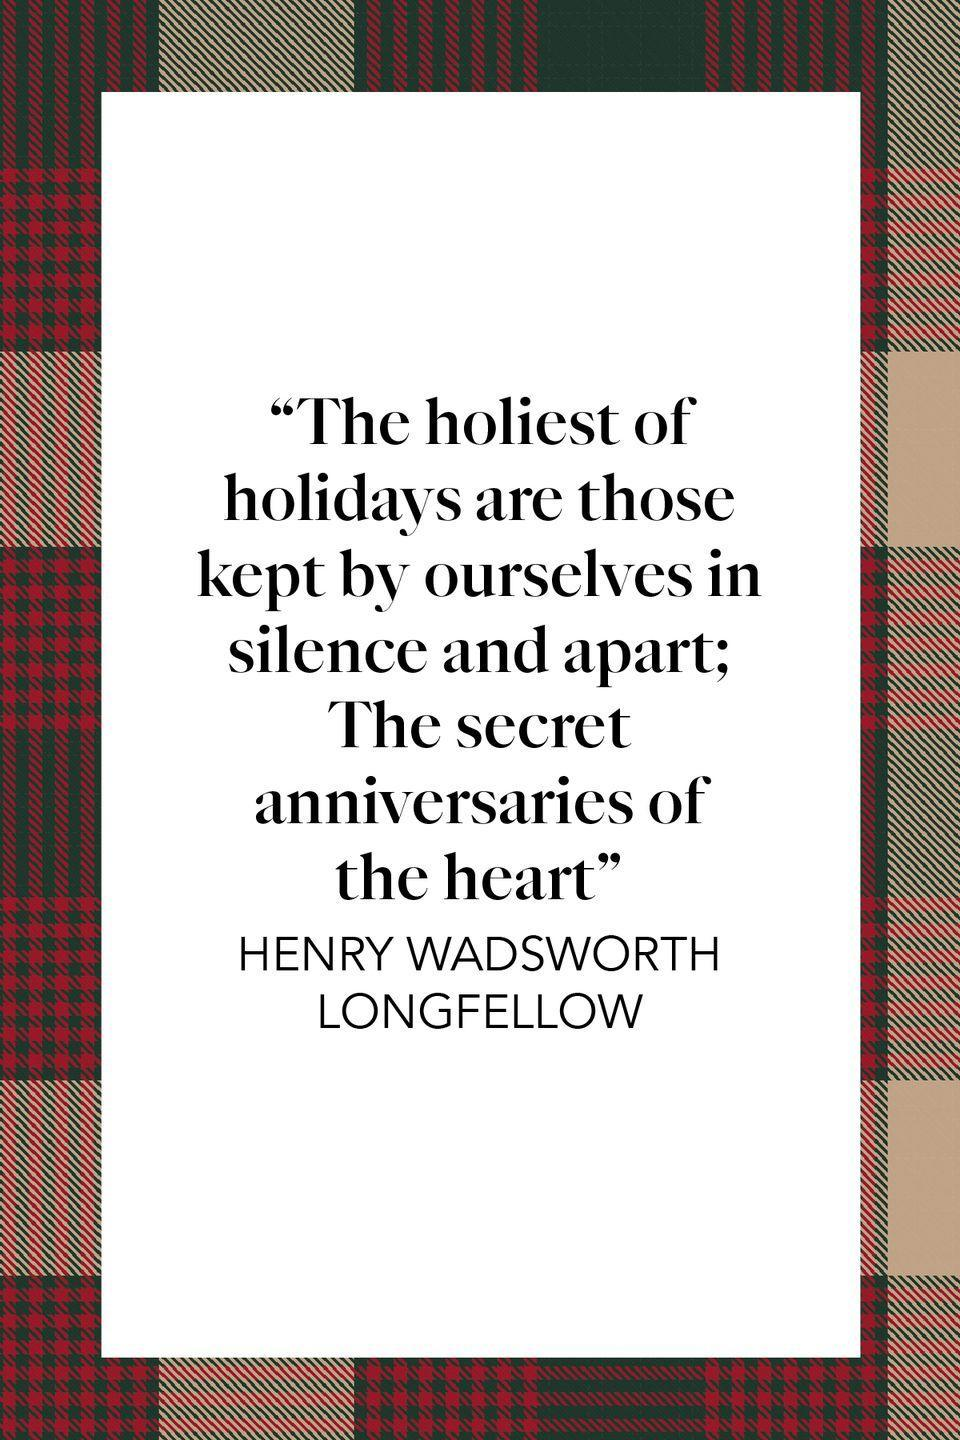 "<p>""The holiest of holidays are those kept by ourselves in silence and apart; The secret anniversaries of the heart,"" 19th century poet Henry Wadsworth Longfellow wrote in his poem ""<a href=""https://poets.org/poem/holidays"" rel=""nofollow noopener"" target=""_blank"" data-ylk=""slk:Holidays"" class=""link rapid-noclick-resp"">Holidays</a>.""</p>"